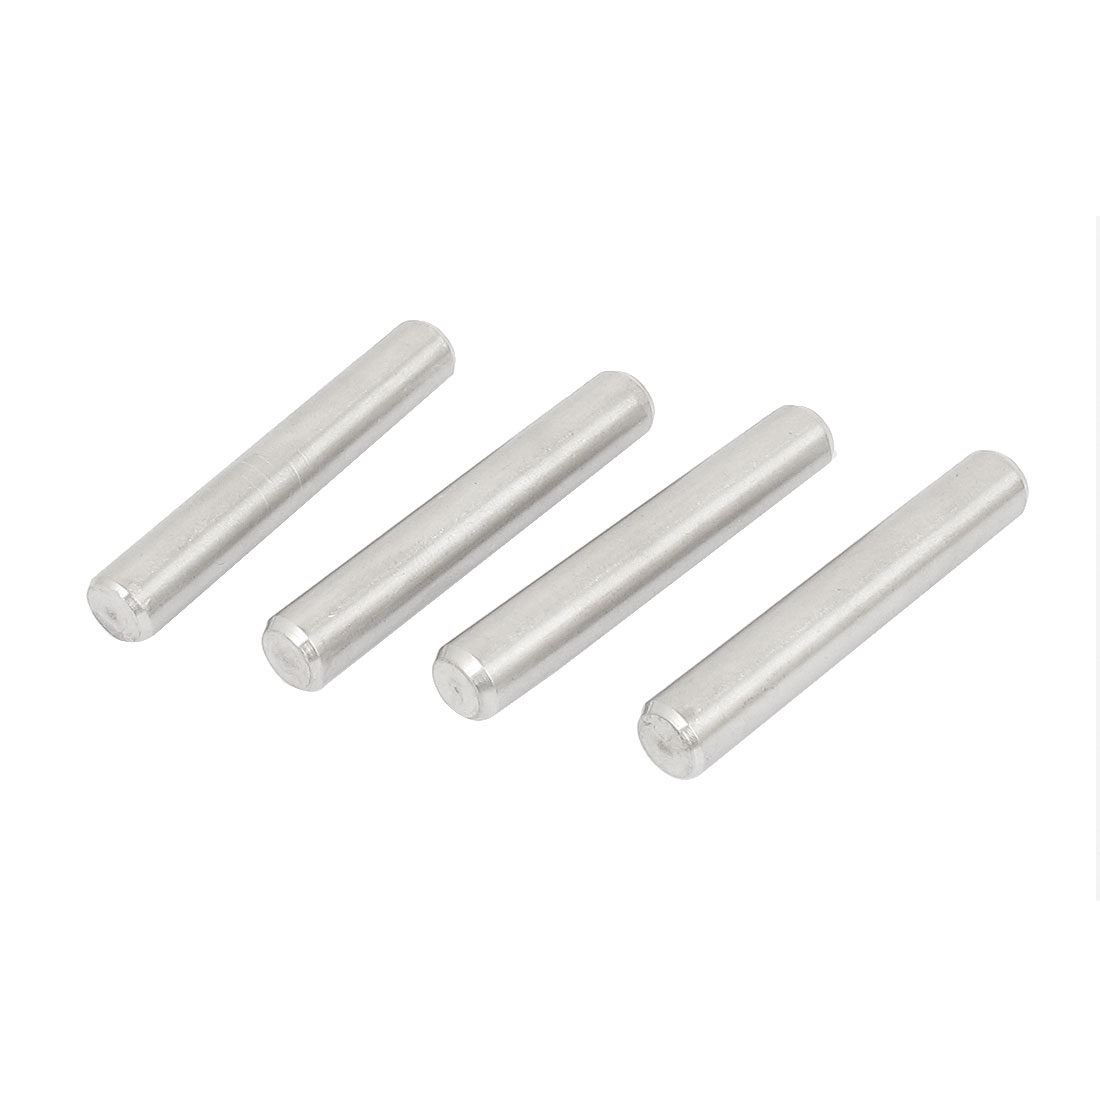 8mm x 50mm 304 Stainless Steel Dowel Pins Fasten Elements Silver Tone 4pcs